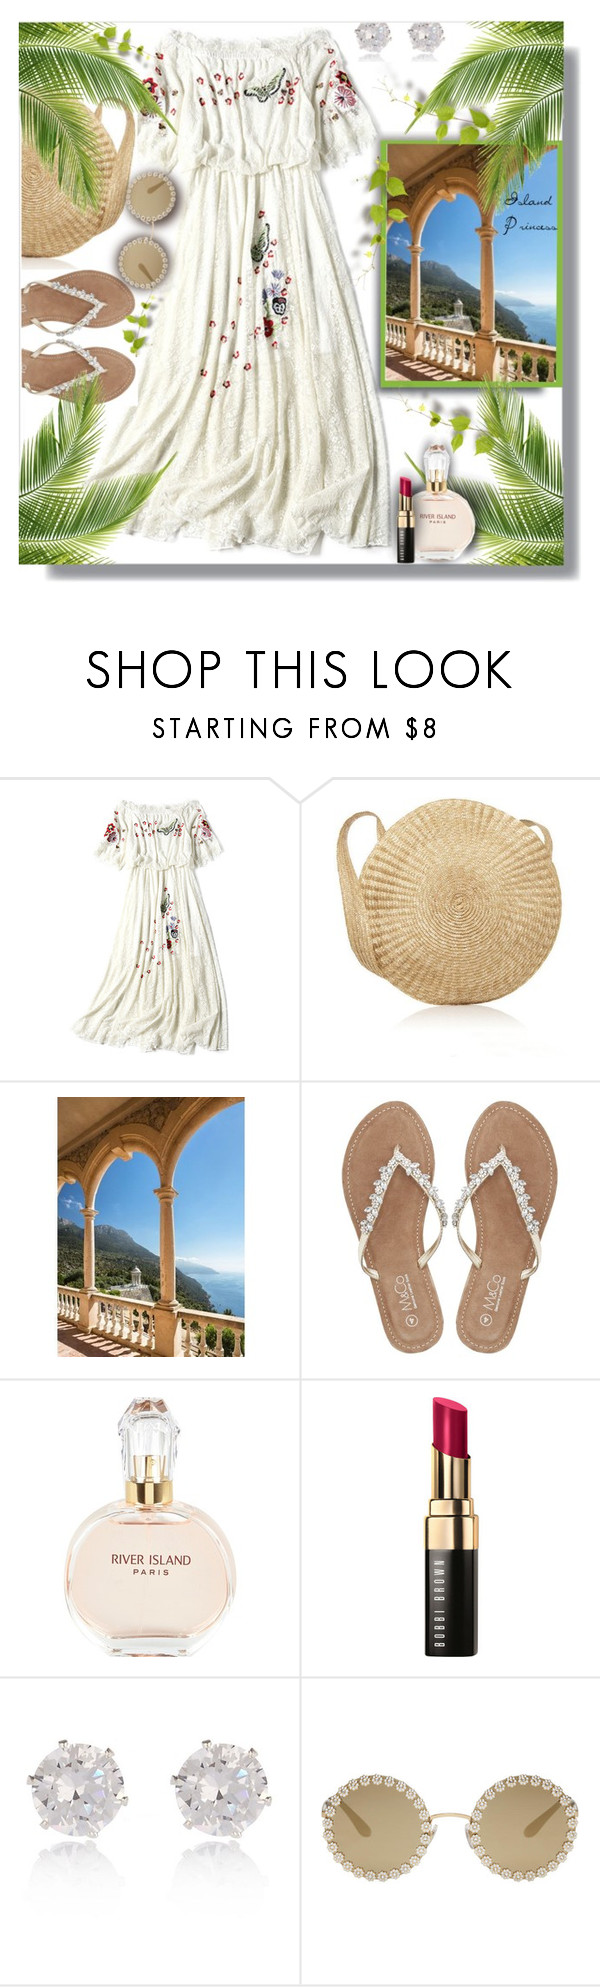 """""""Island Princess!"""" by sarahguo ❤ liked on Polyvore featuring Brewster Home Fashions, M&Co, River Island, Bobbi Brown Cosmetics and Dolce&Gabbana"""